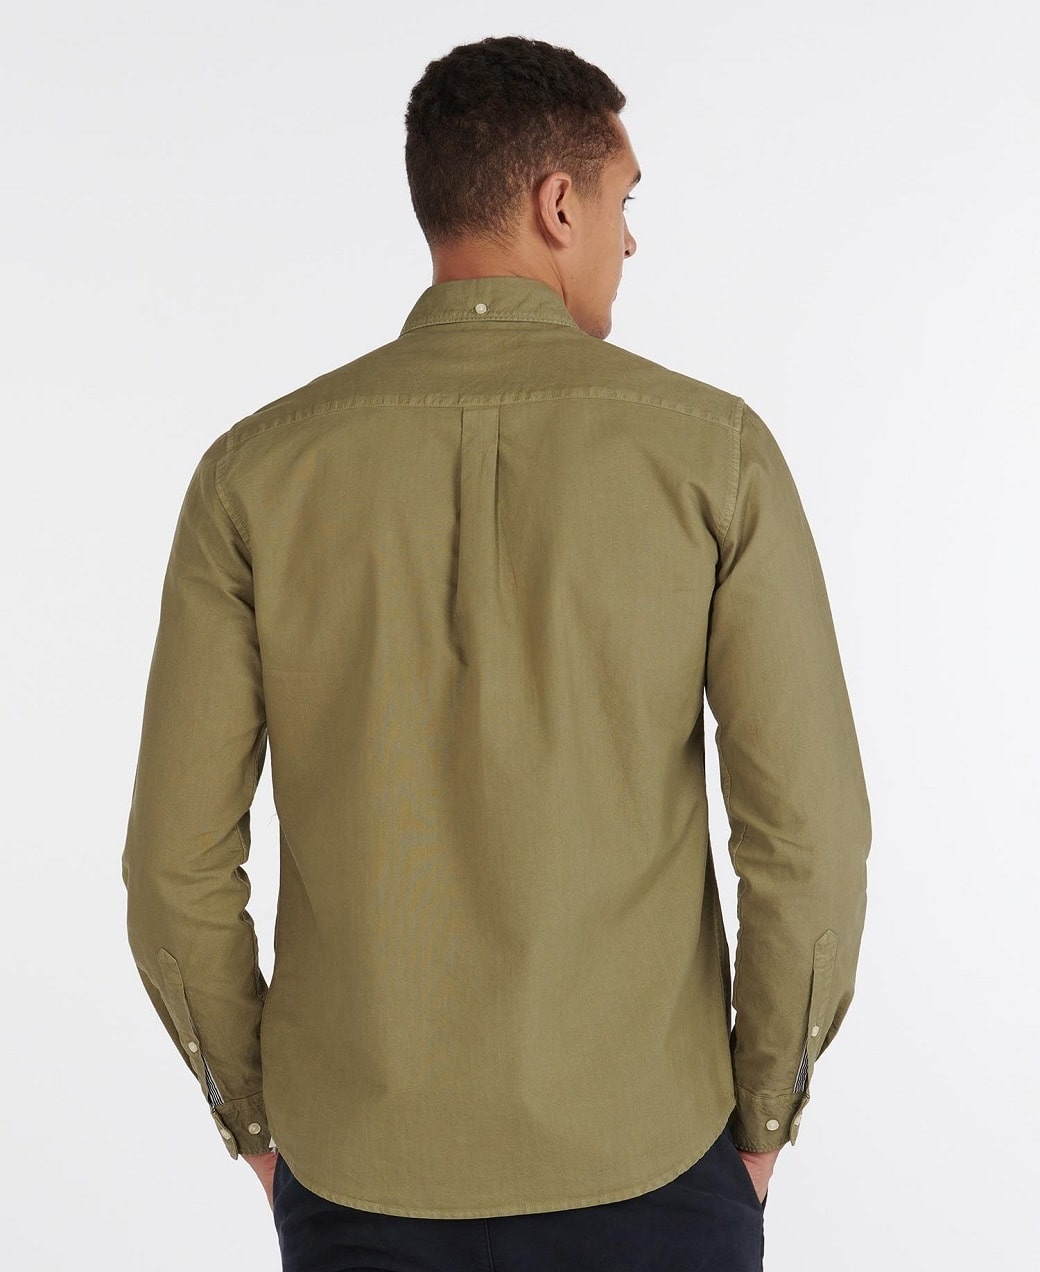 Barbour Oxford 13 Tailored Shirt Olive-4